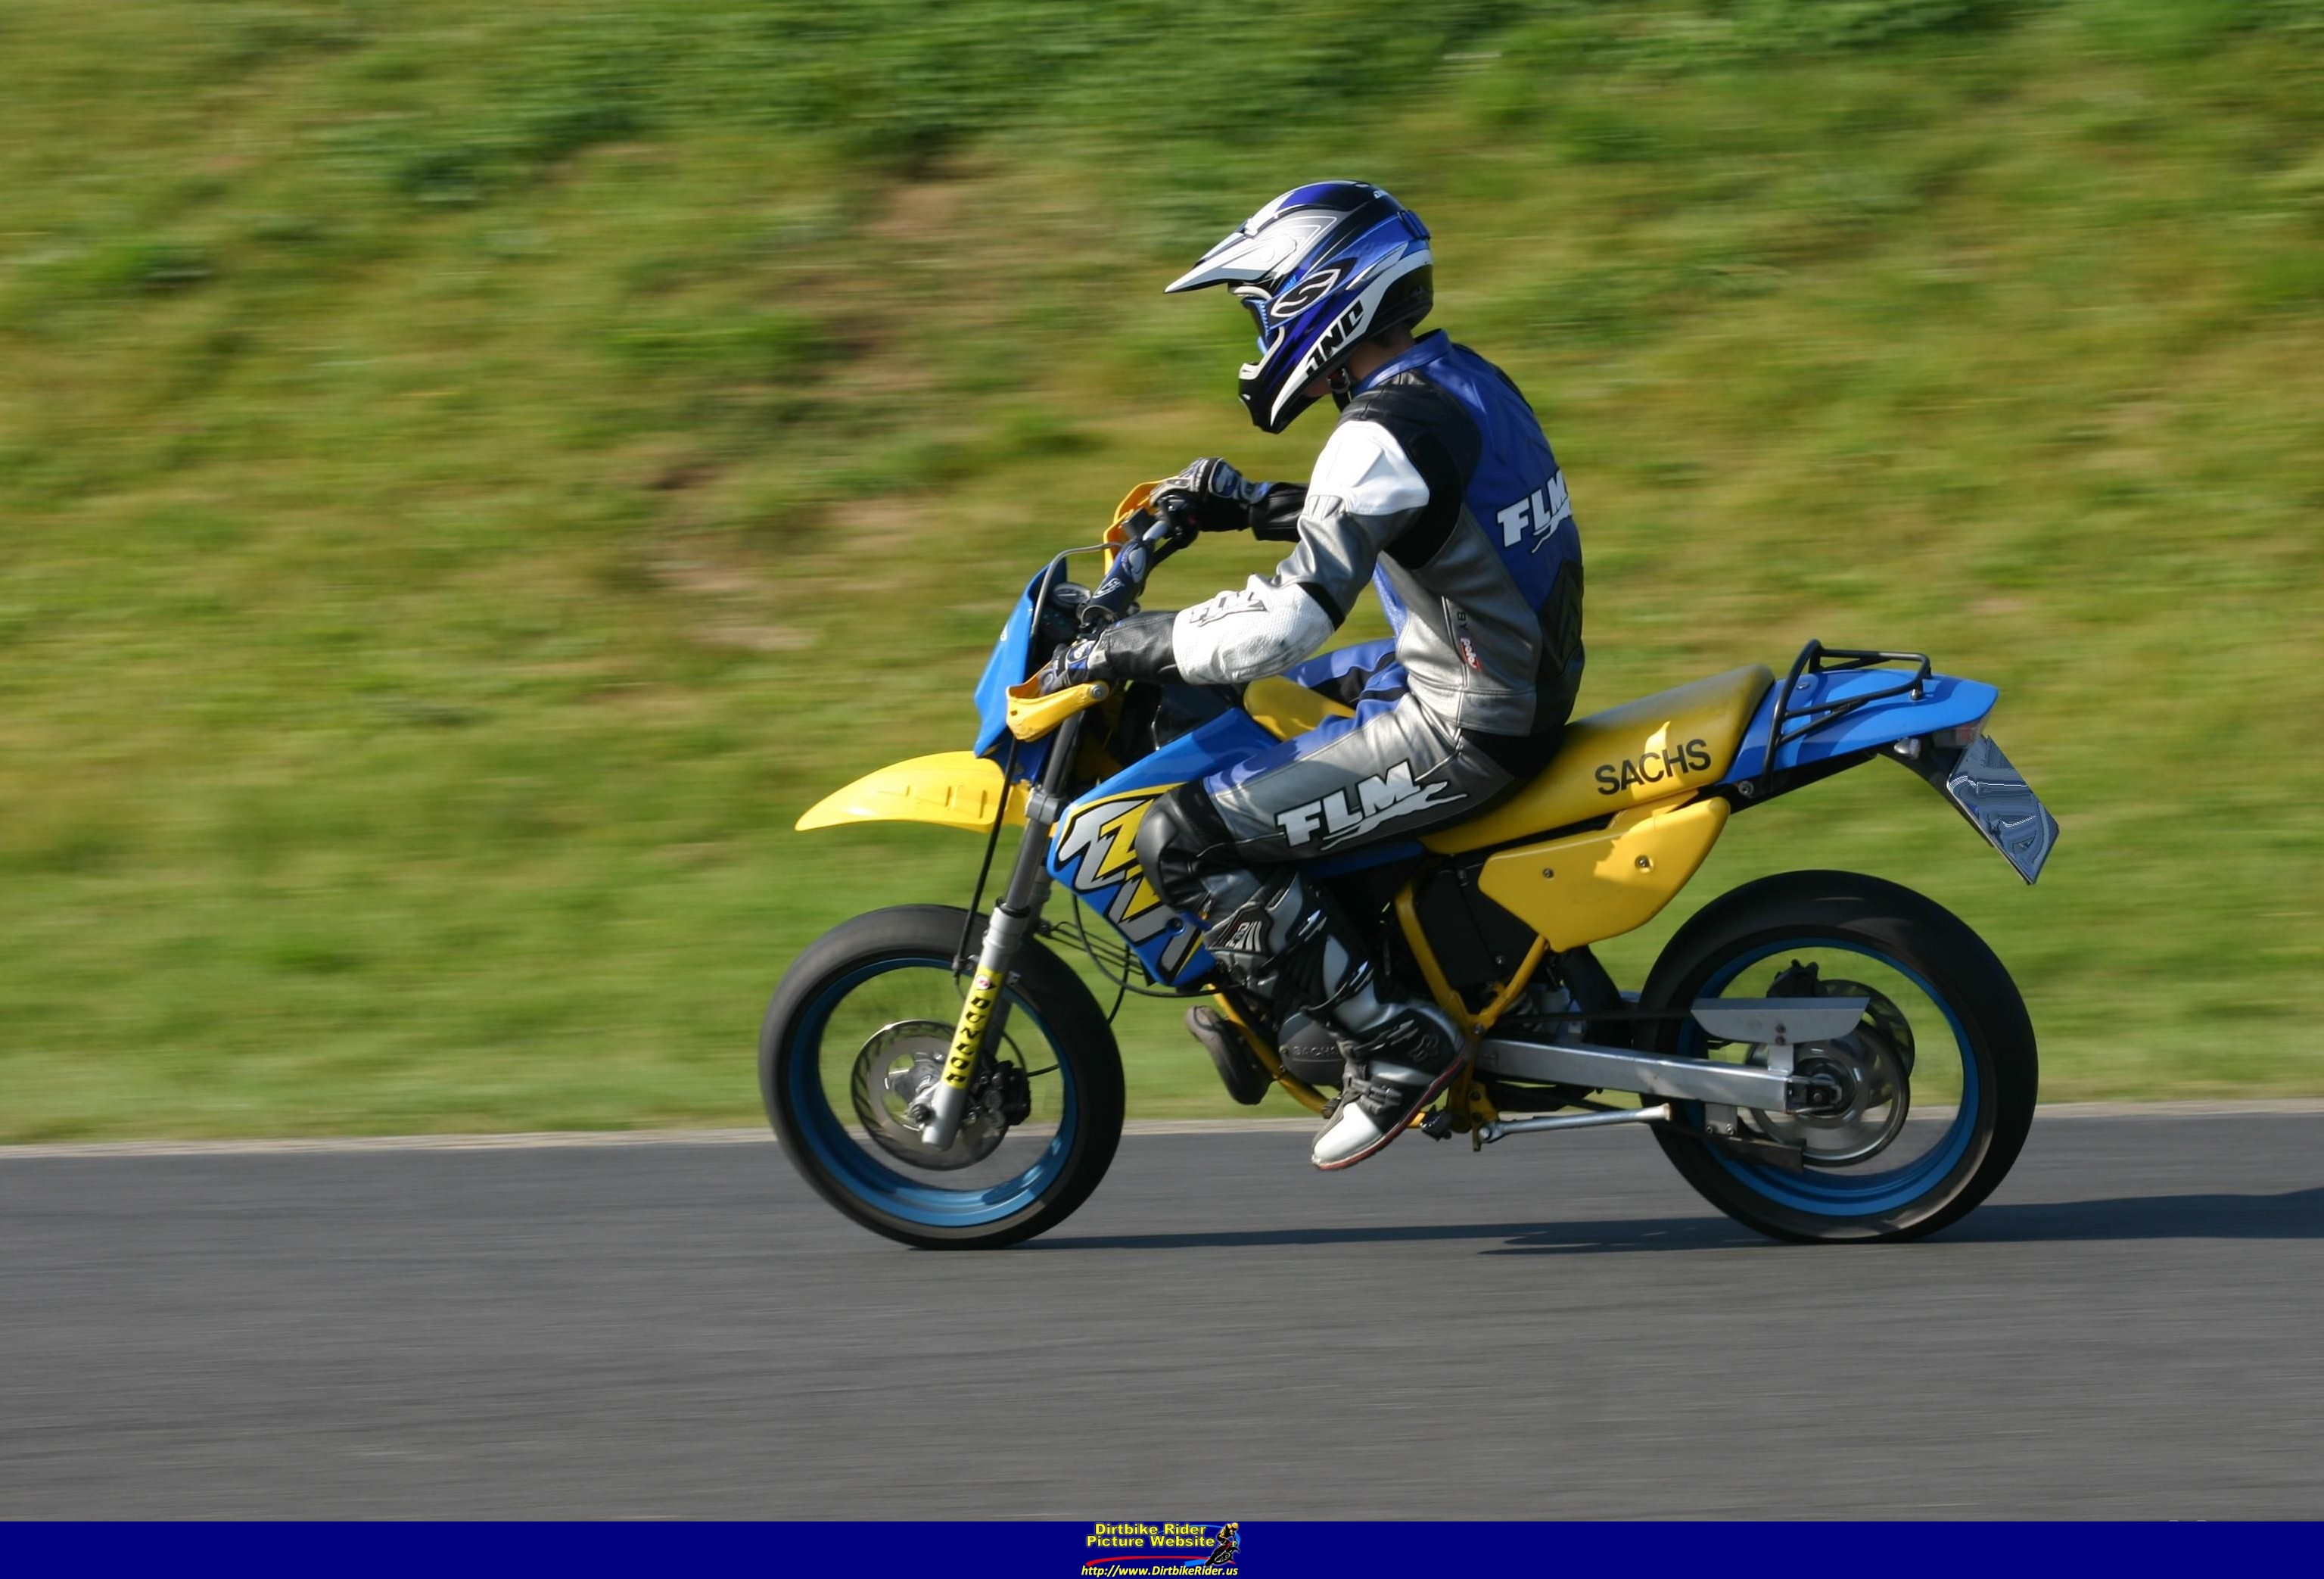 Sachs ZZ 125 1998 images #124174